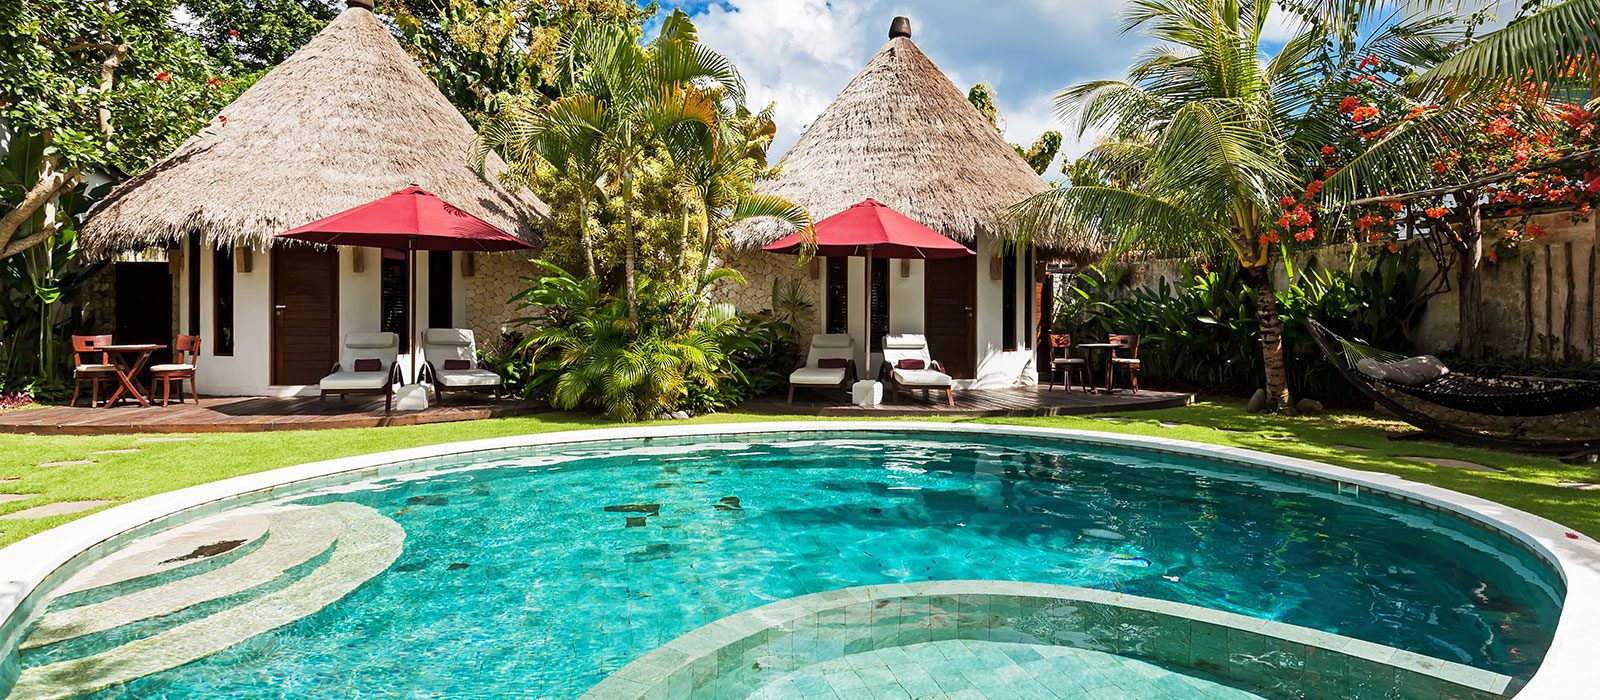 oasisbungalows-slide1